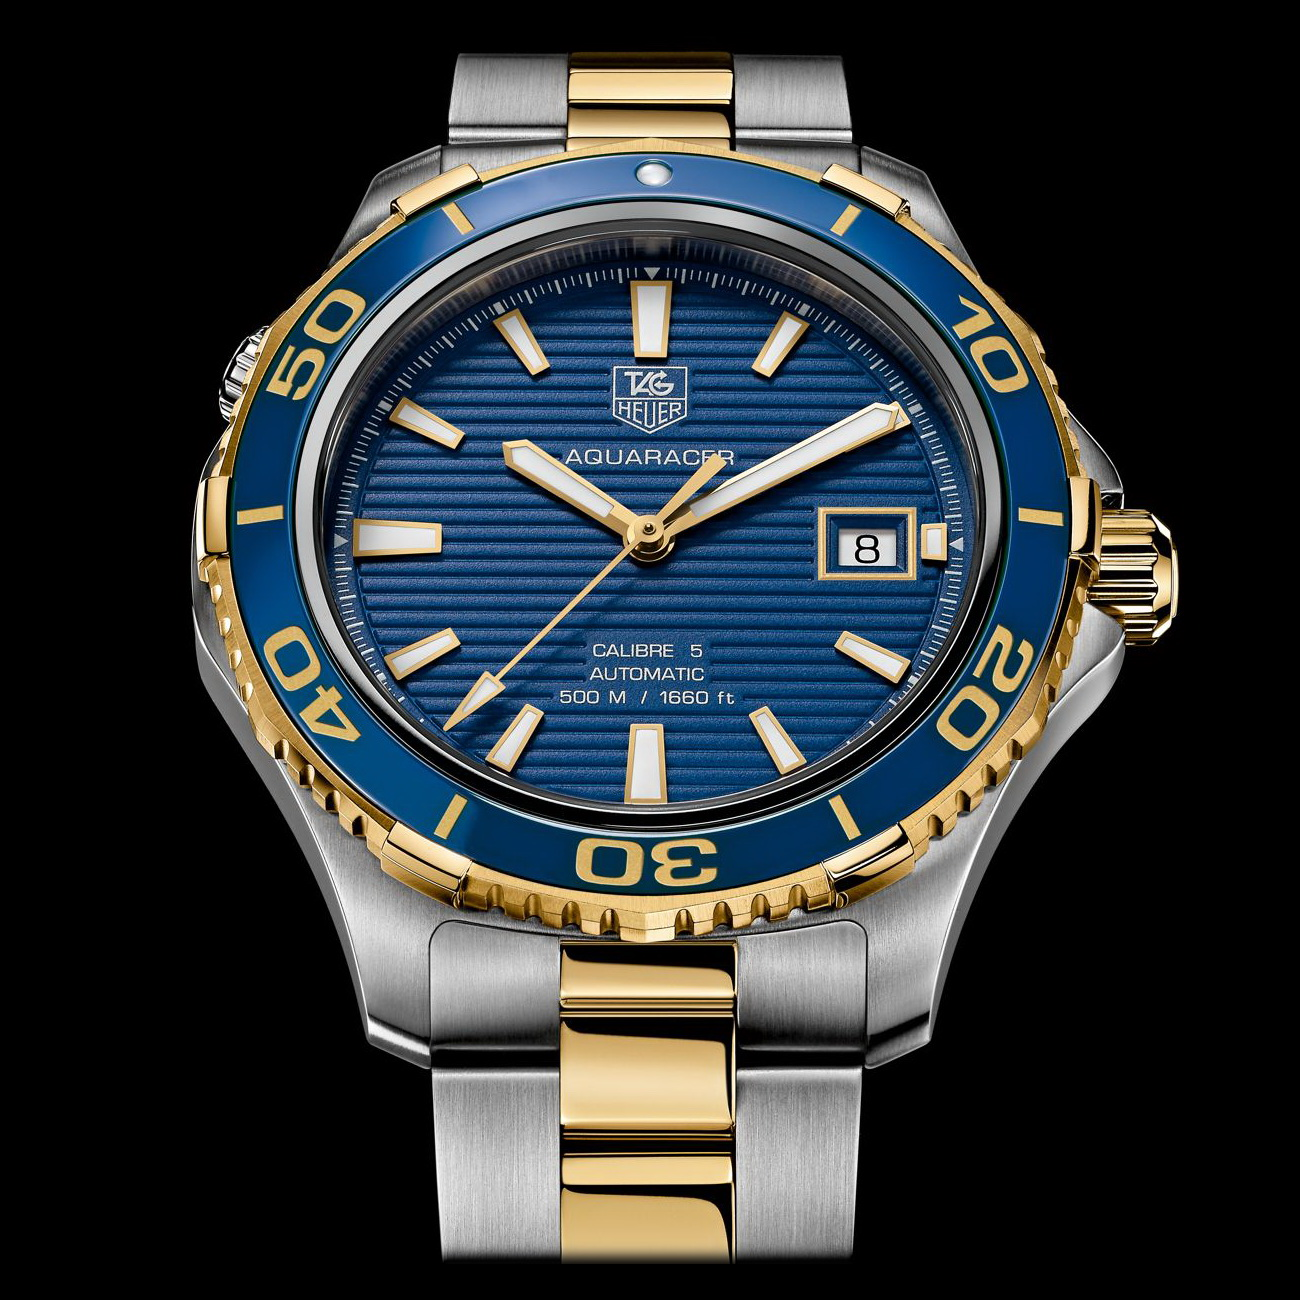 Oceanictime tag heuer aquaracer 500m ceramic firstlook for The tag heuer aquaracer